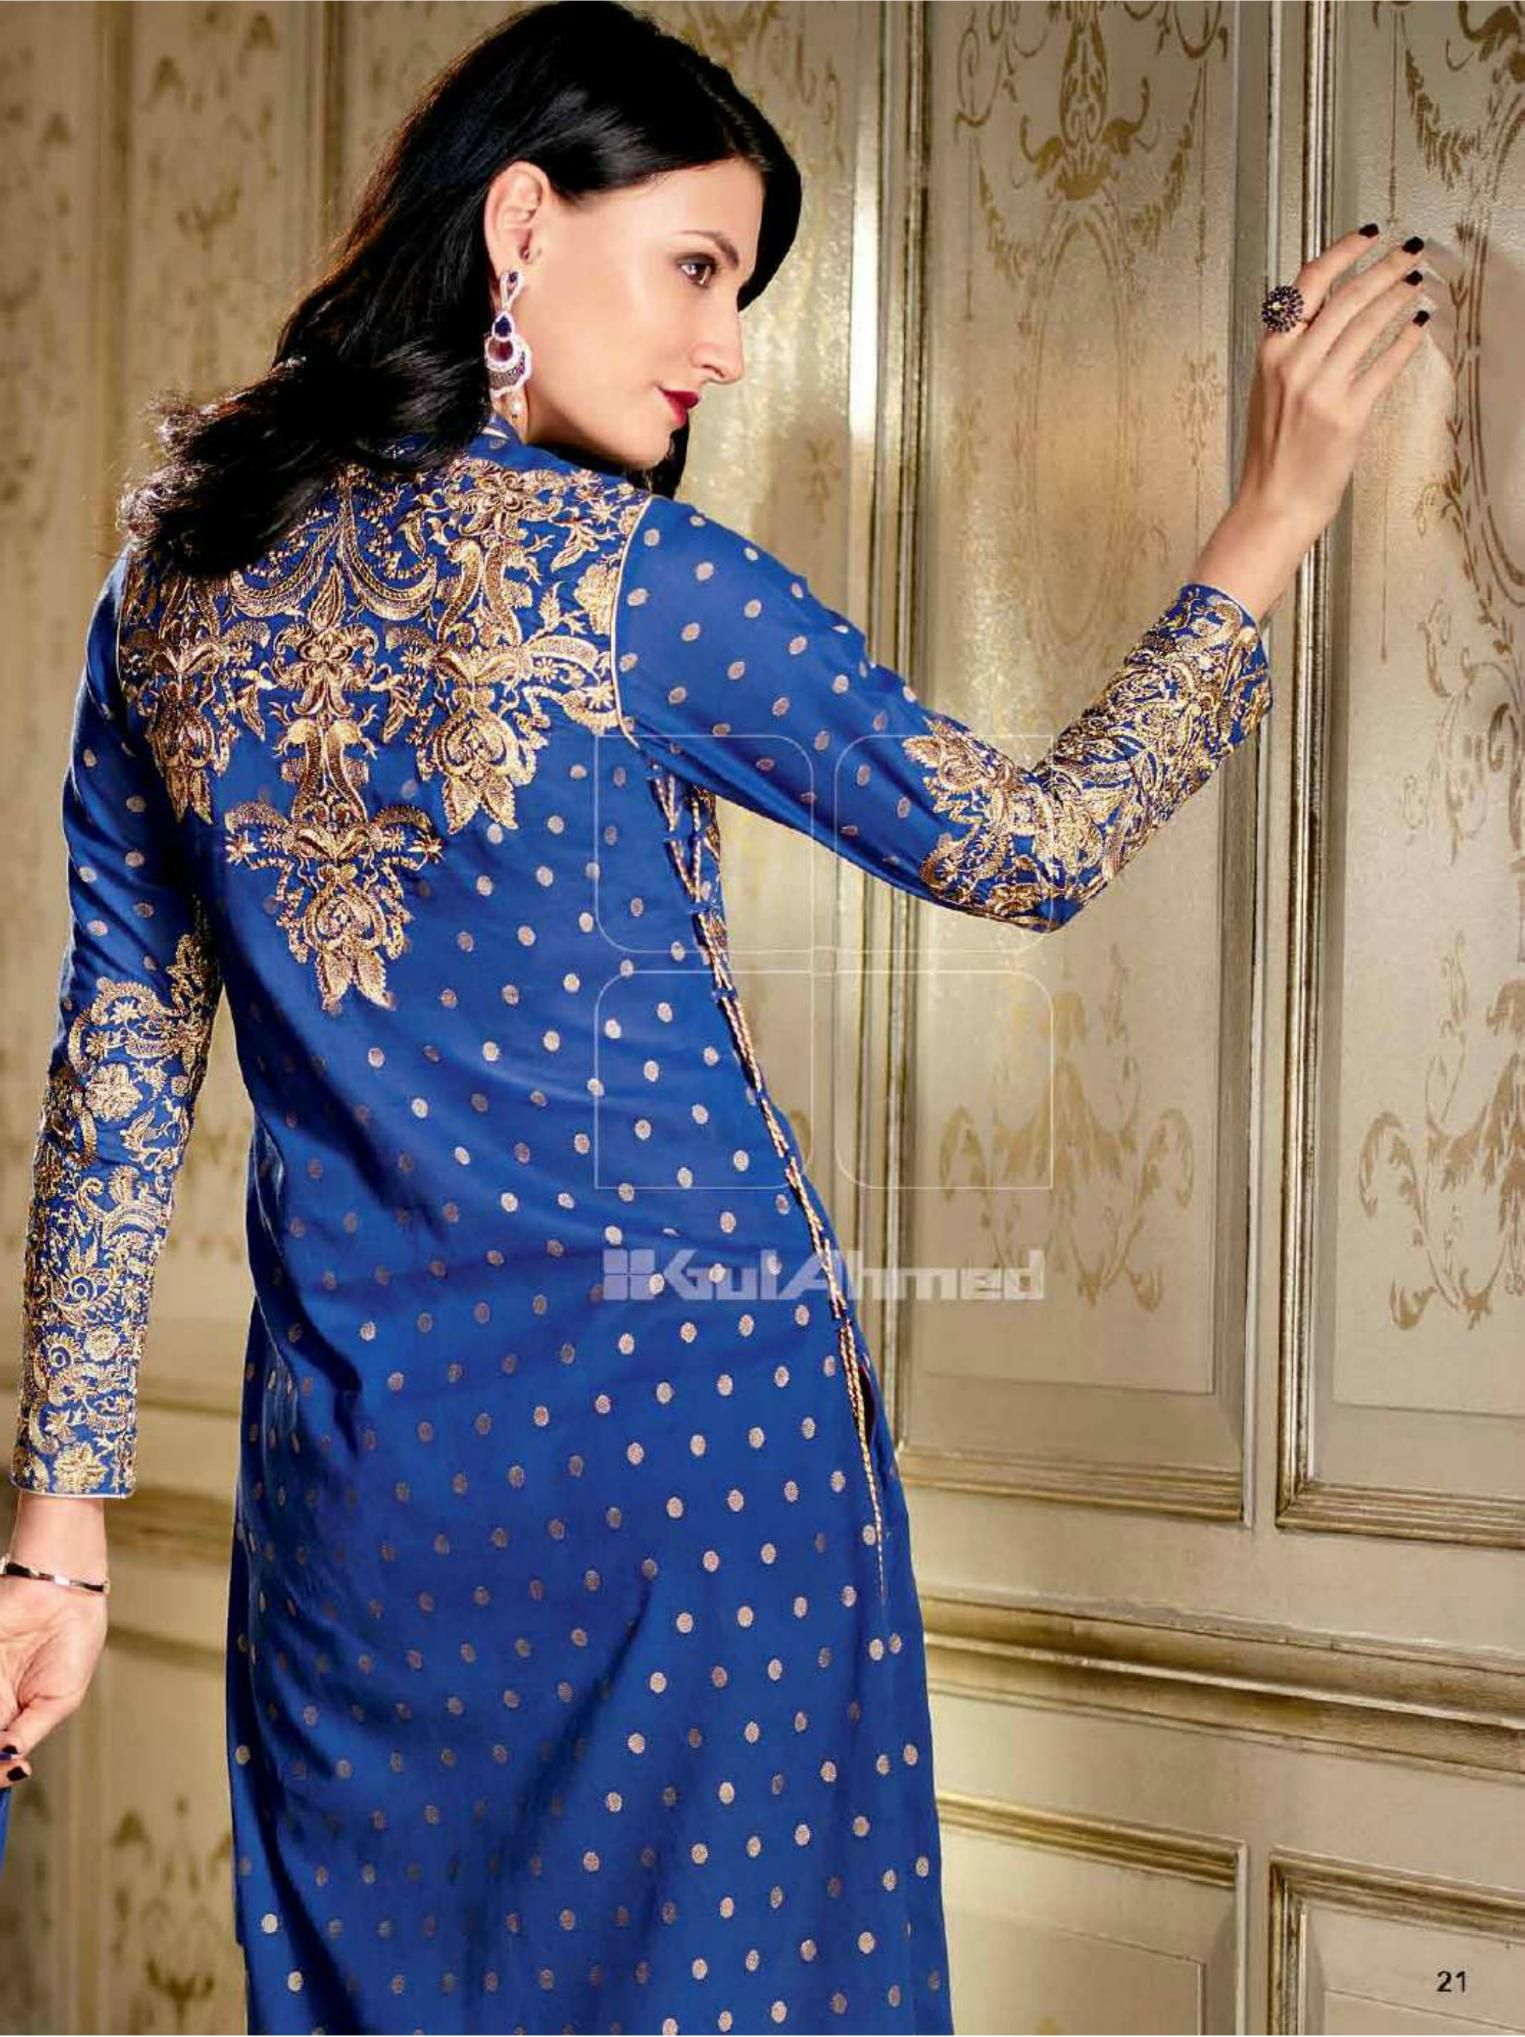 Gul ahmed winter dresses collection 2015 fashionip - Complete Collection Of Gul Ahmed Summer Eid Lawn Collection 2015 Fashion Designer Gul Ahmed Dresses Collection